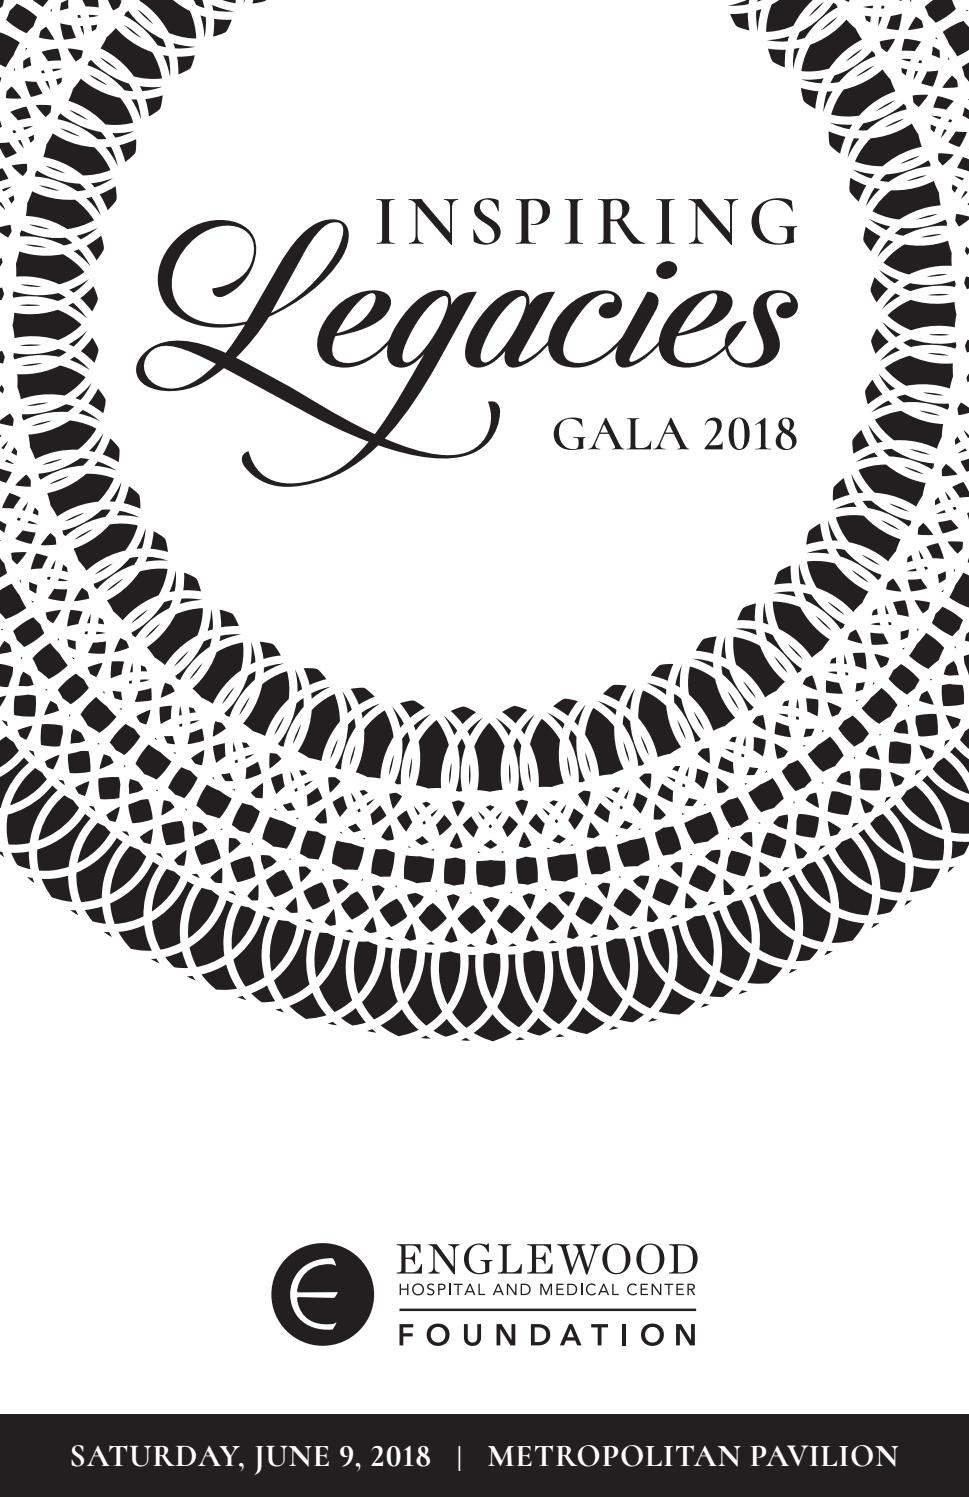 2018 Gala Journal – Inspiring Legacies by Englewood Health